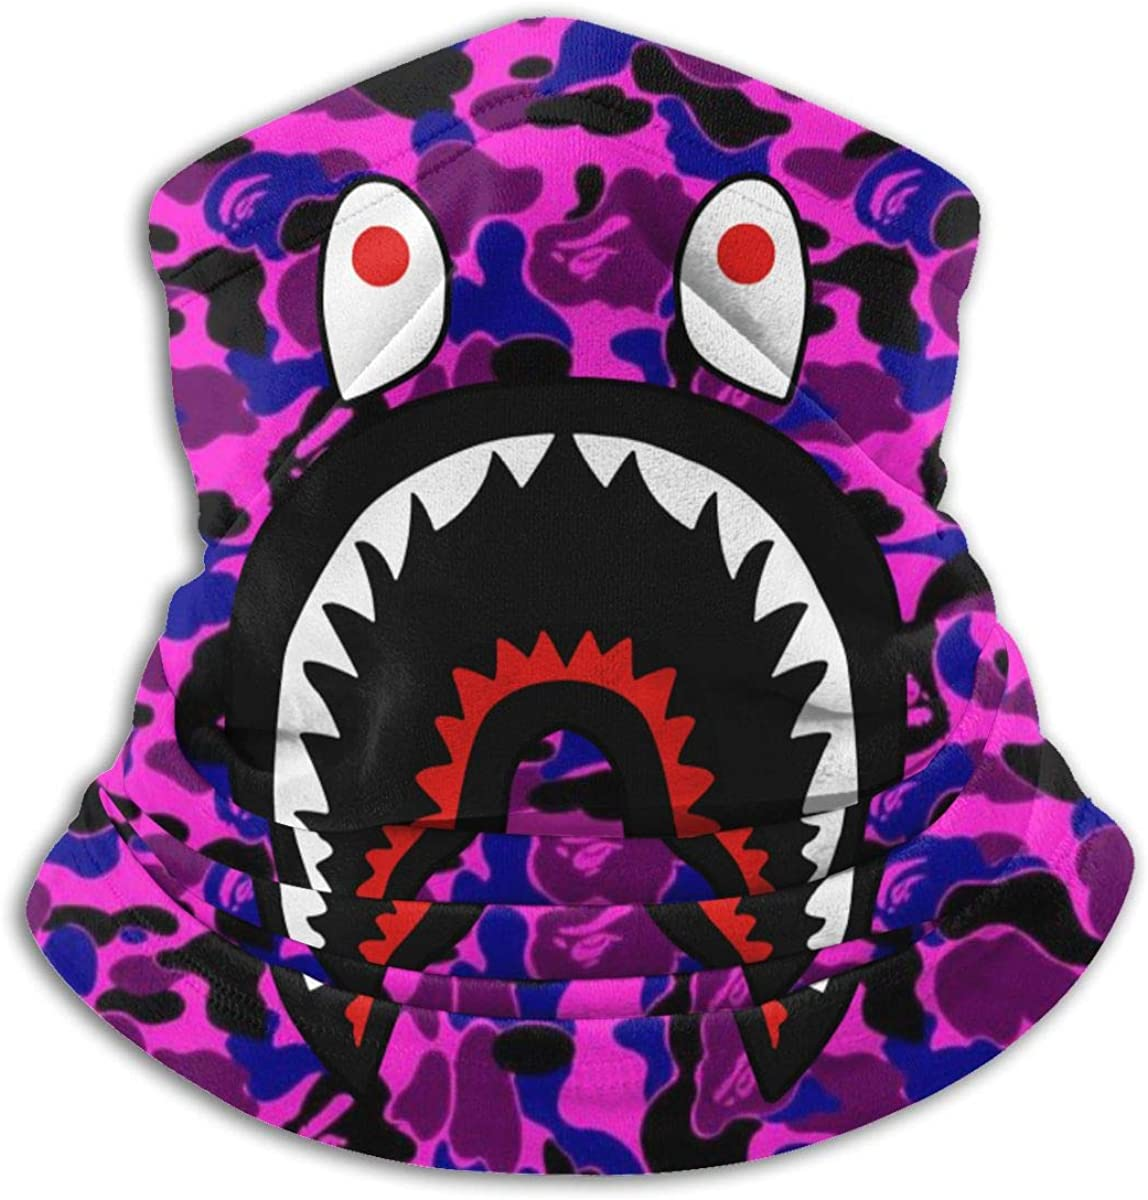 Bape Shark Half Blue Camo Neck Gaiter Warmer Windproof Mask Dust Face Clothing Free UV Face Mask